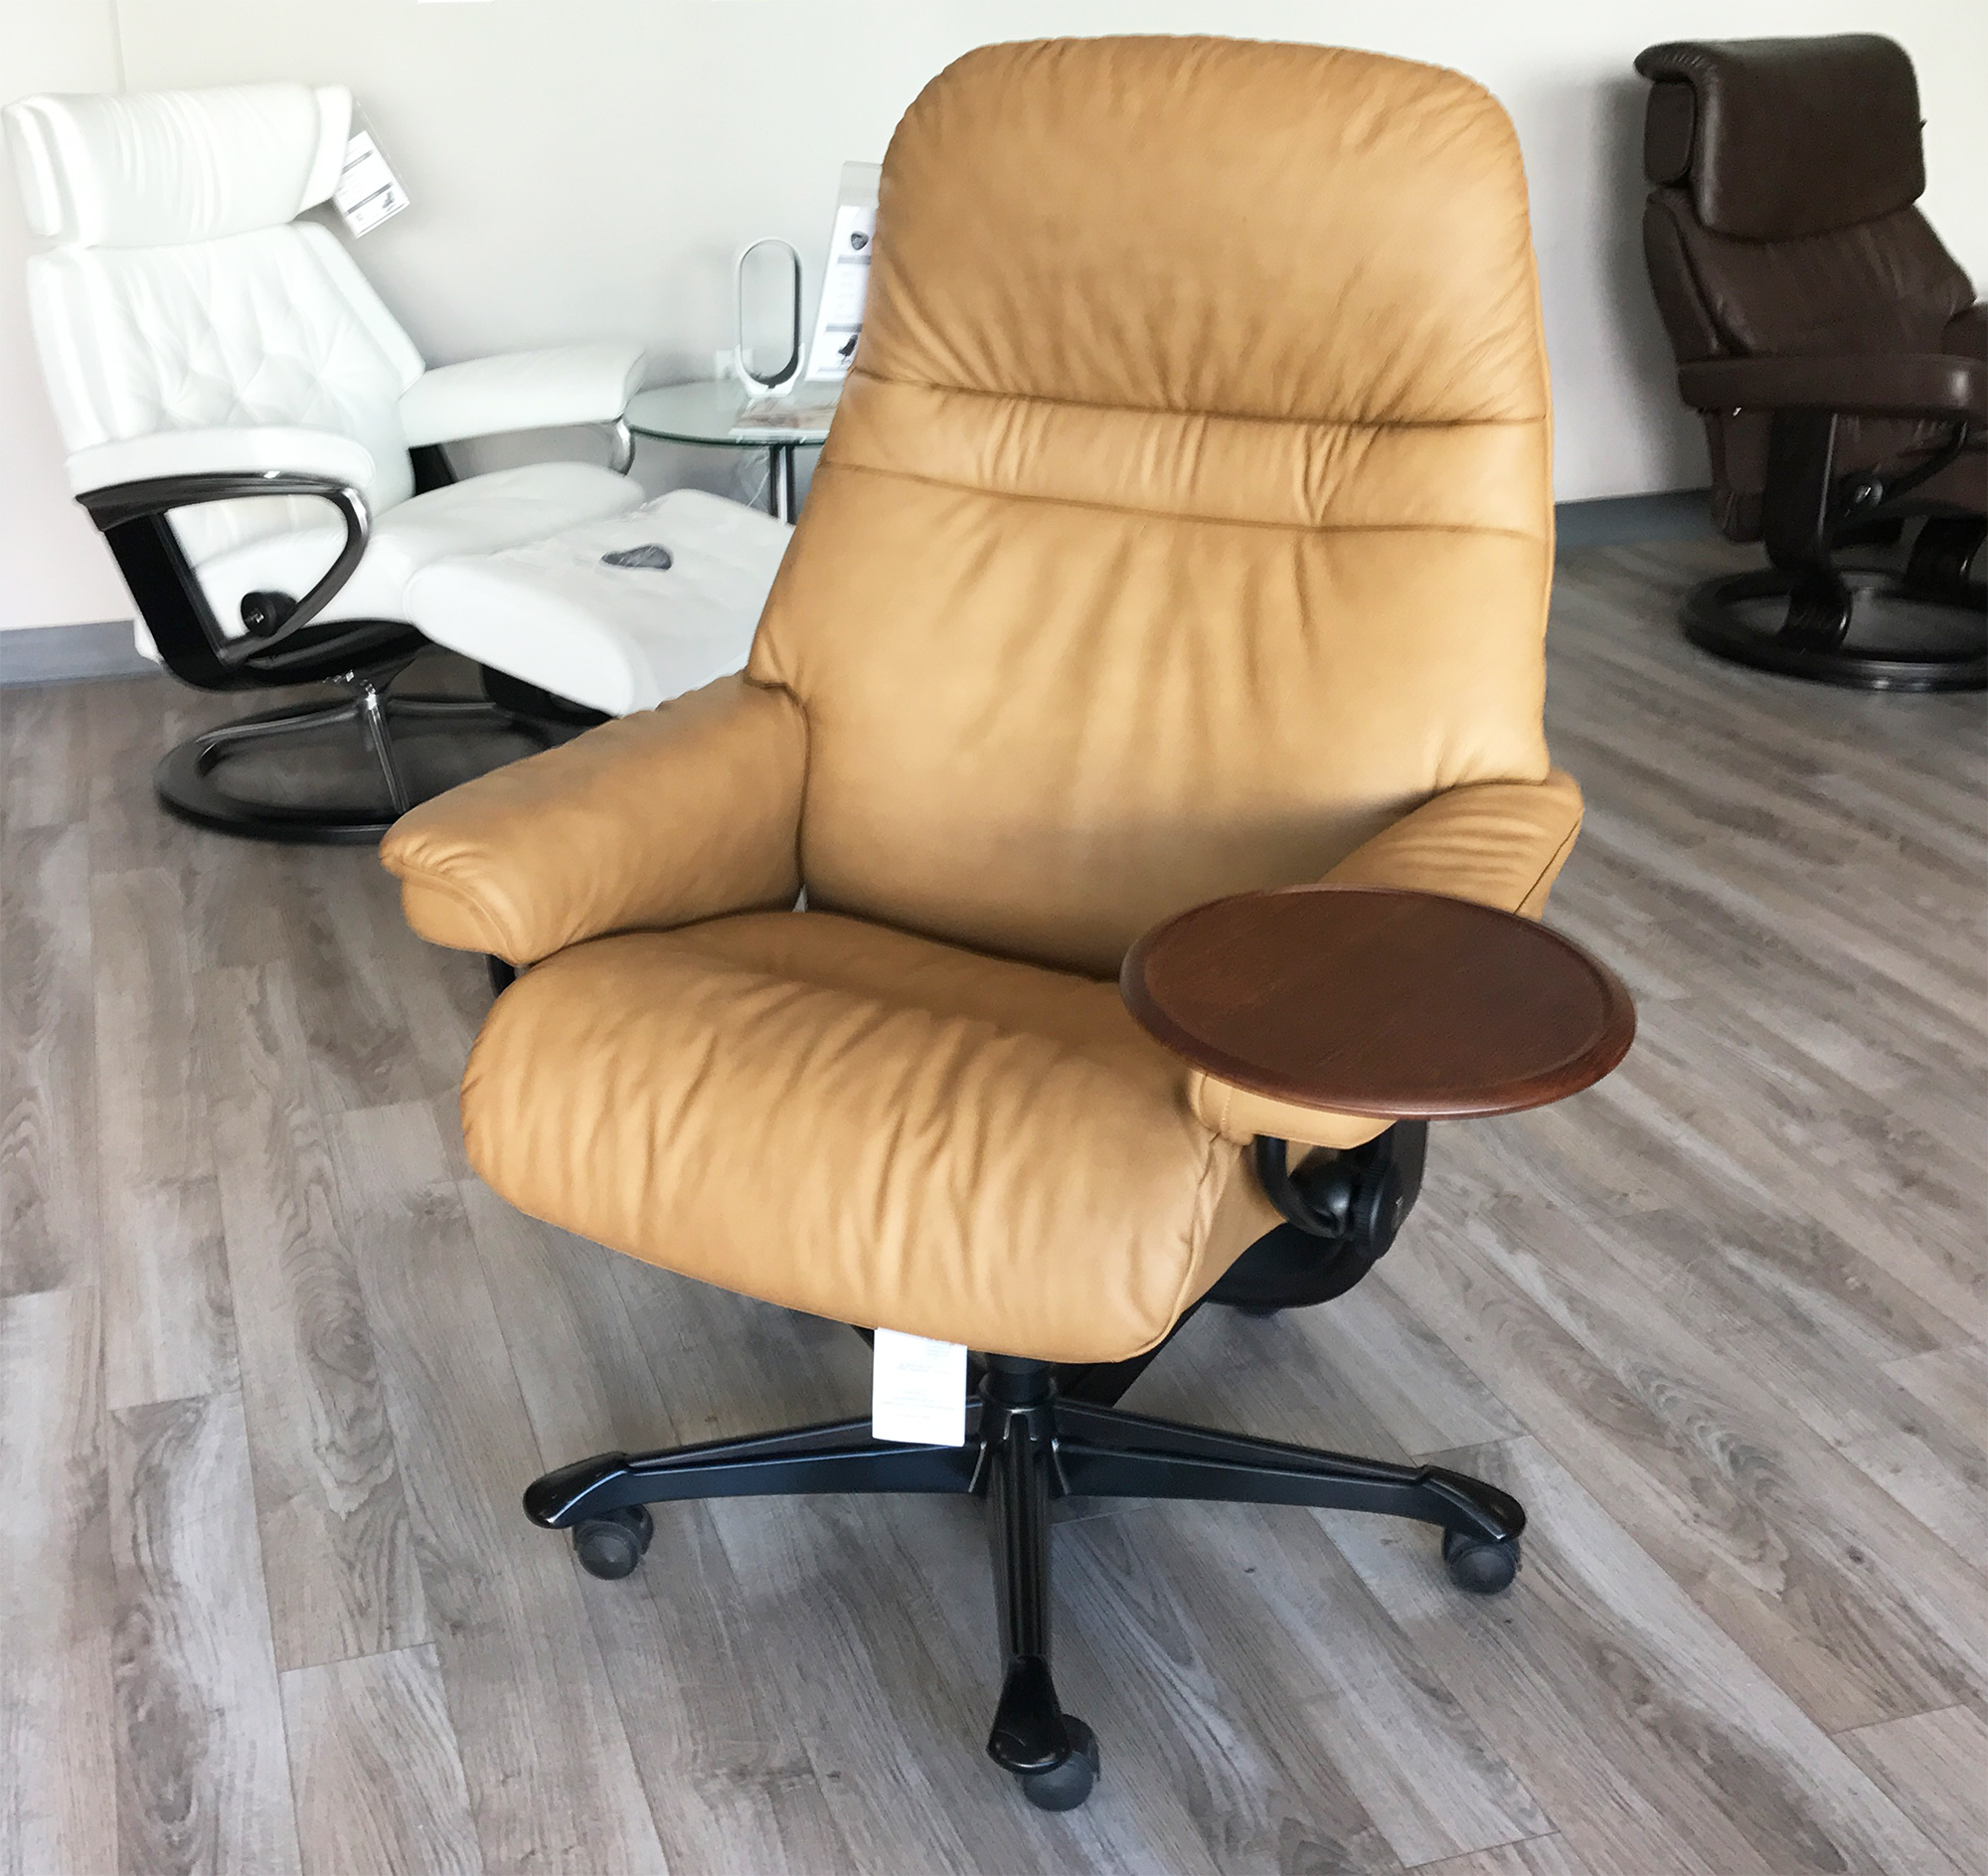 stressless sunrise office desk chair paloma taupe leather by ekornes